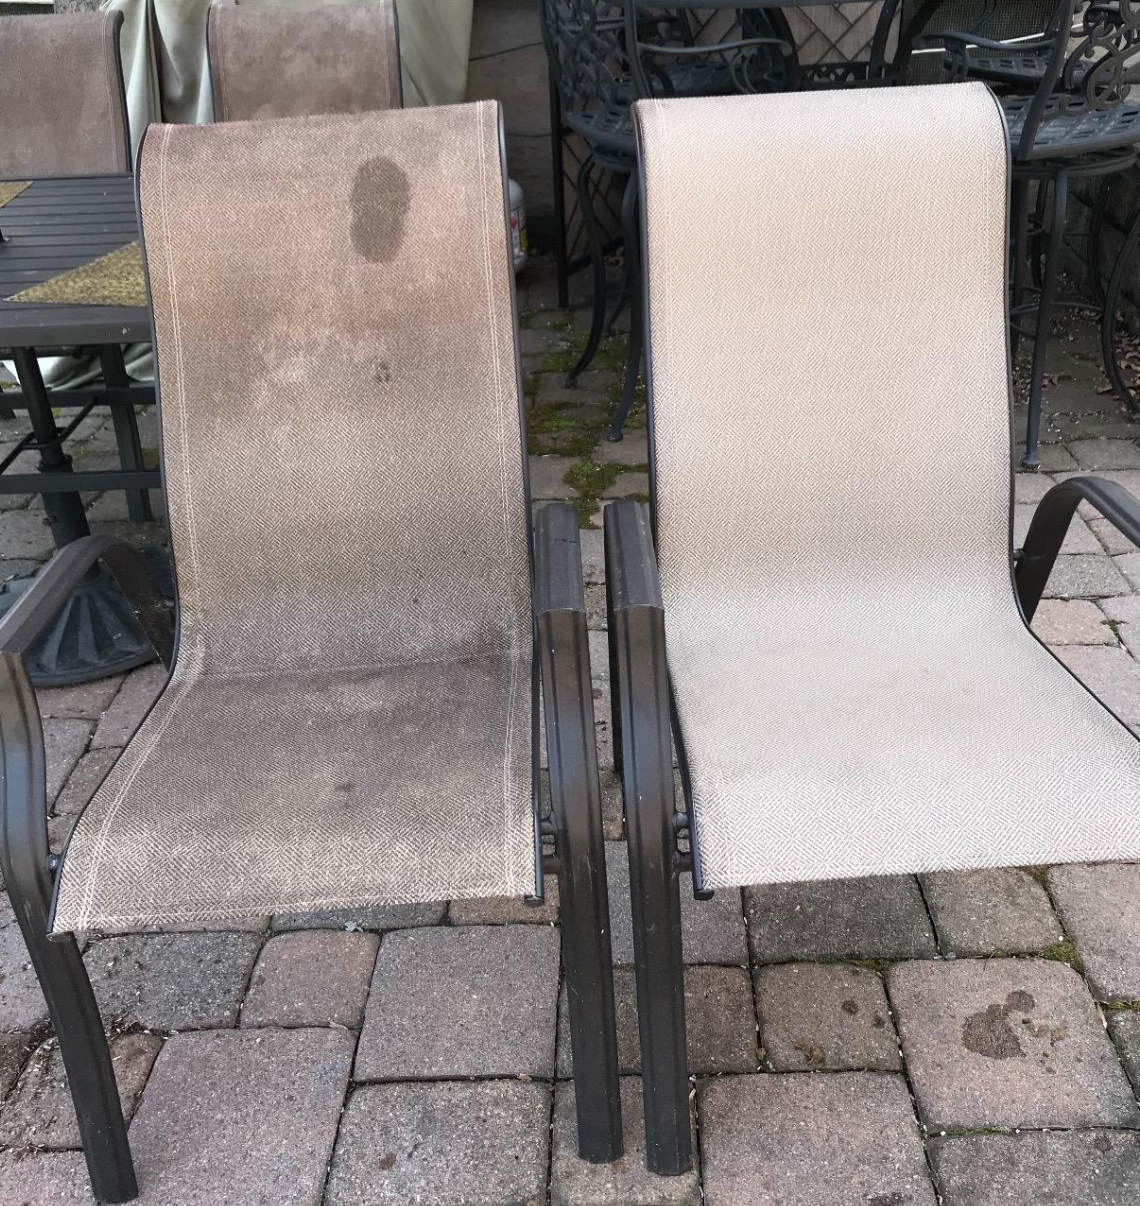 Reviewer image of two patio chairs, one without stains after using the mildew remover and one much dirtier with tons of mildew